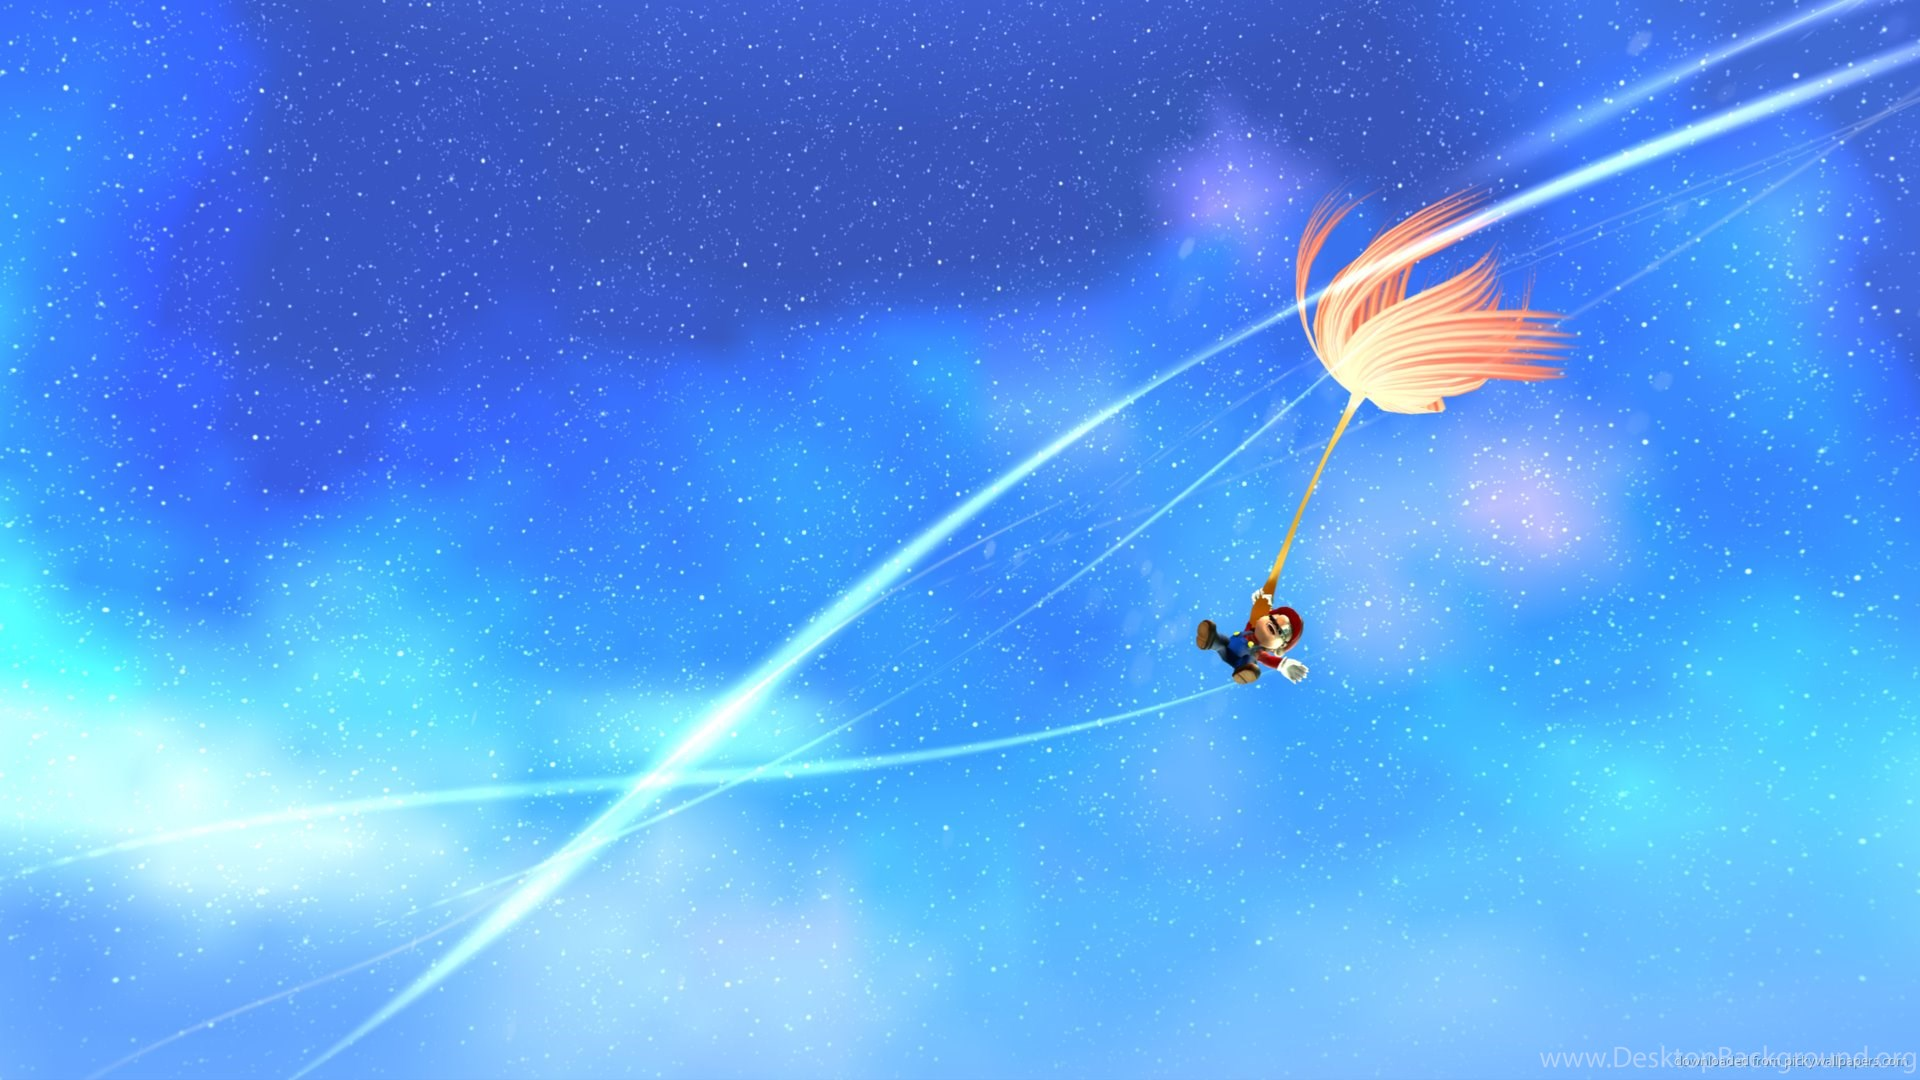 Super mario galaxy wallpapers hd desktop background - Supercar wallpaper hd for android ...